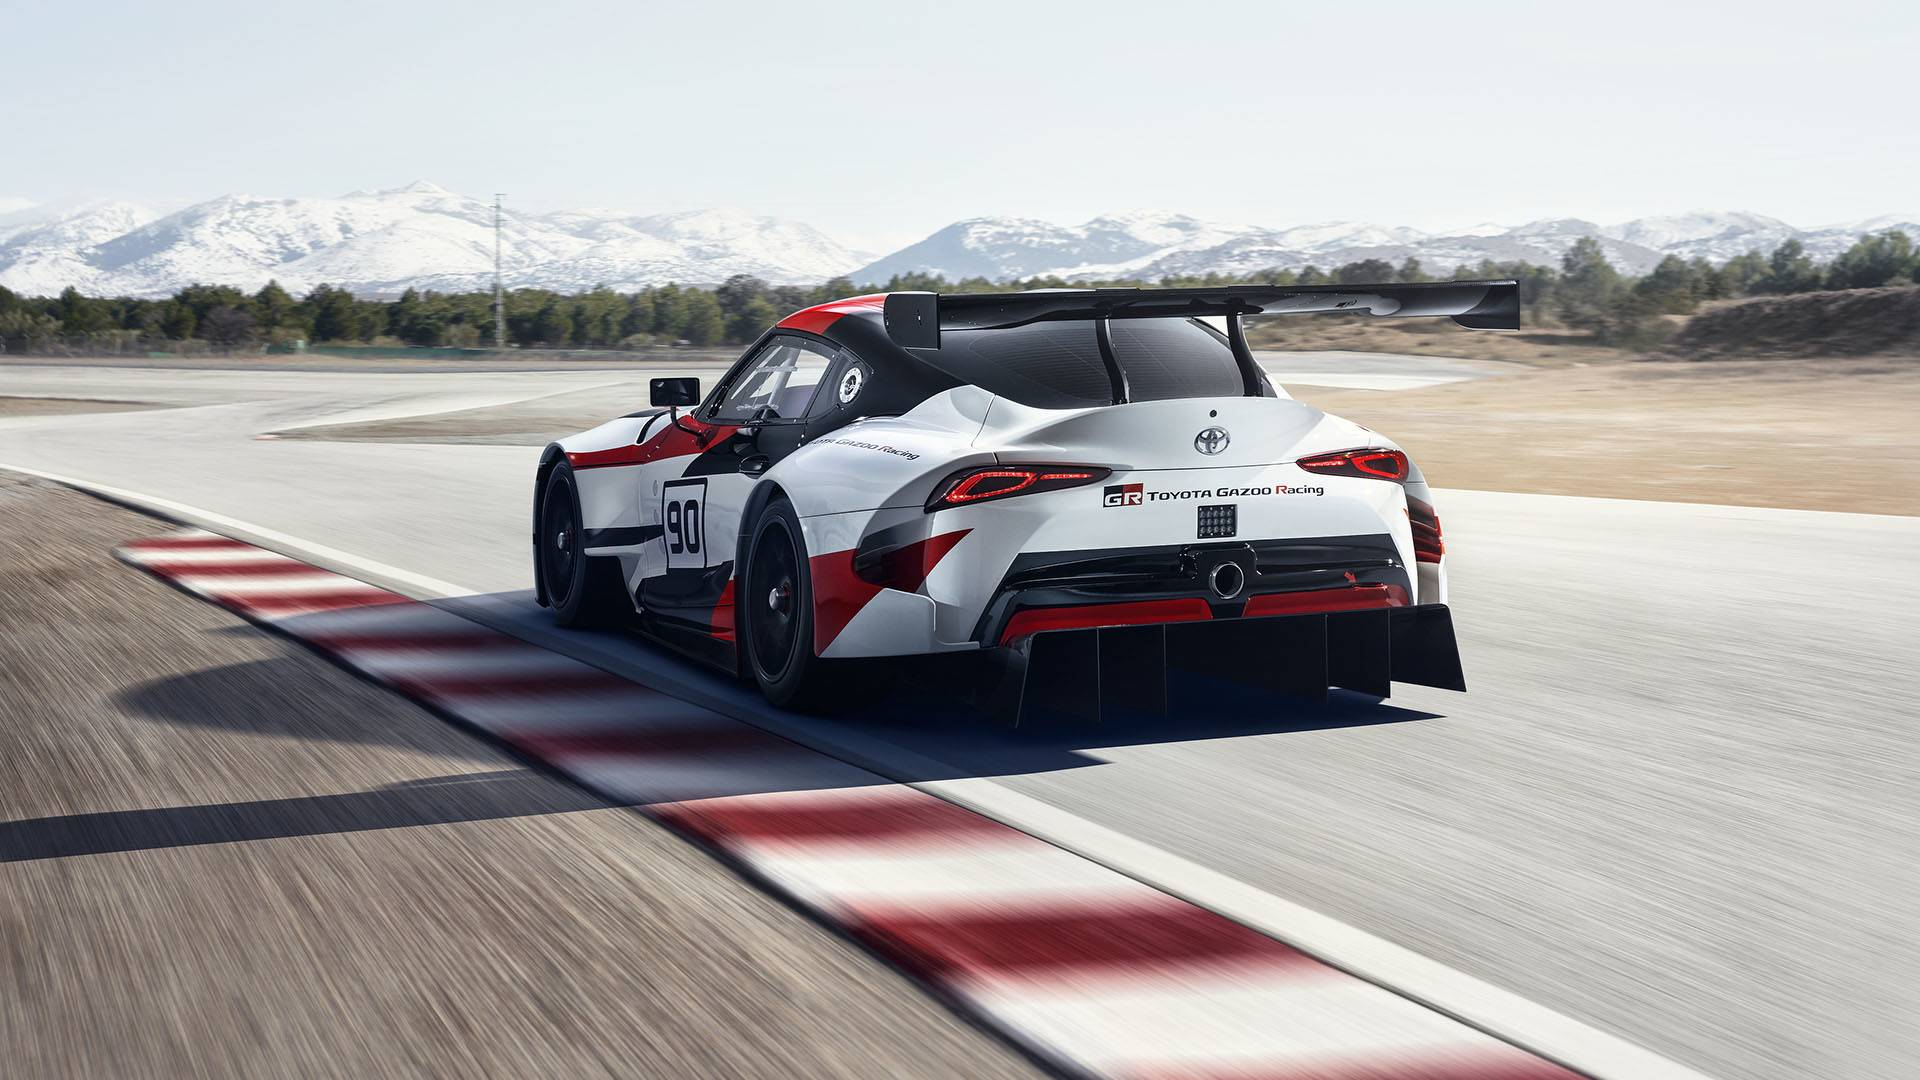 Oficial: Toyota GR Supra Racing Concept, ¡bestial!